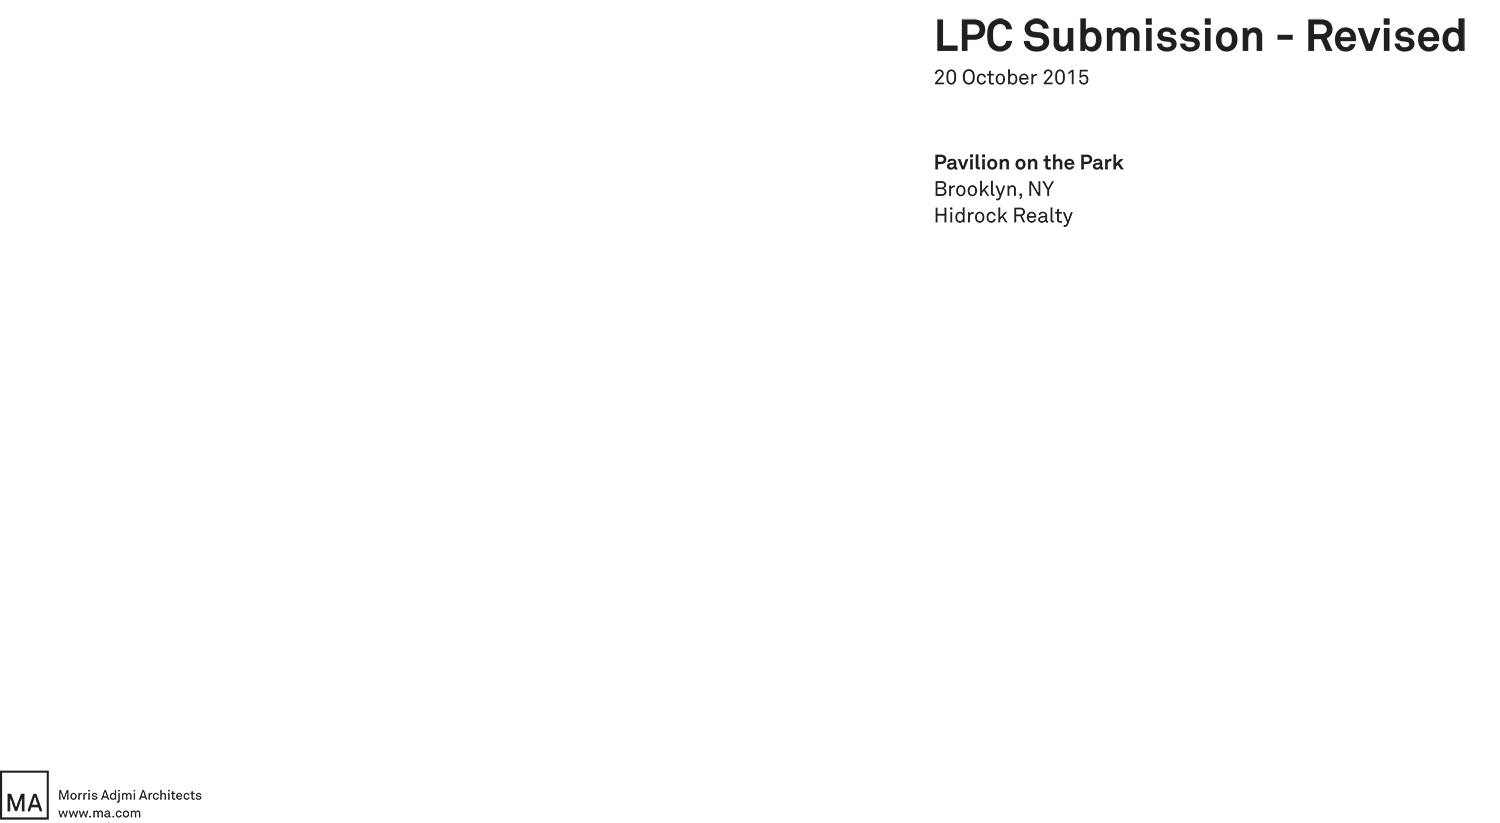 2015 10 15 LPC Presentation COMBINED.indd